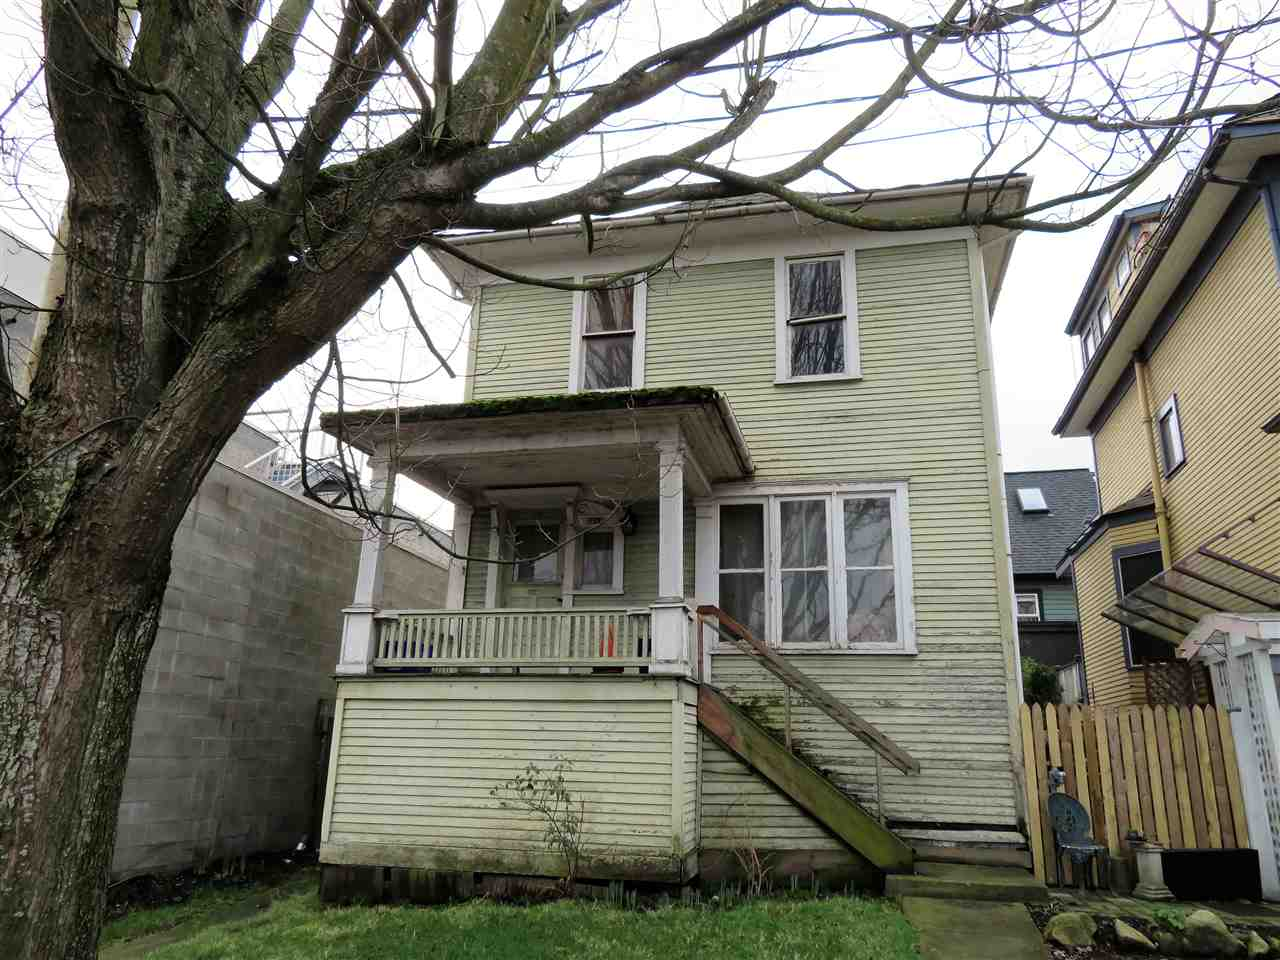 Main Photo: 2314 ONTARIO Street in Vancouver: Mount Pleasant VE House for sale (Vancouver East)  : MLS® # R2236005